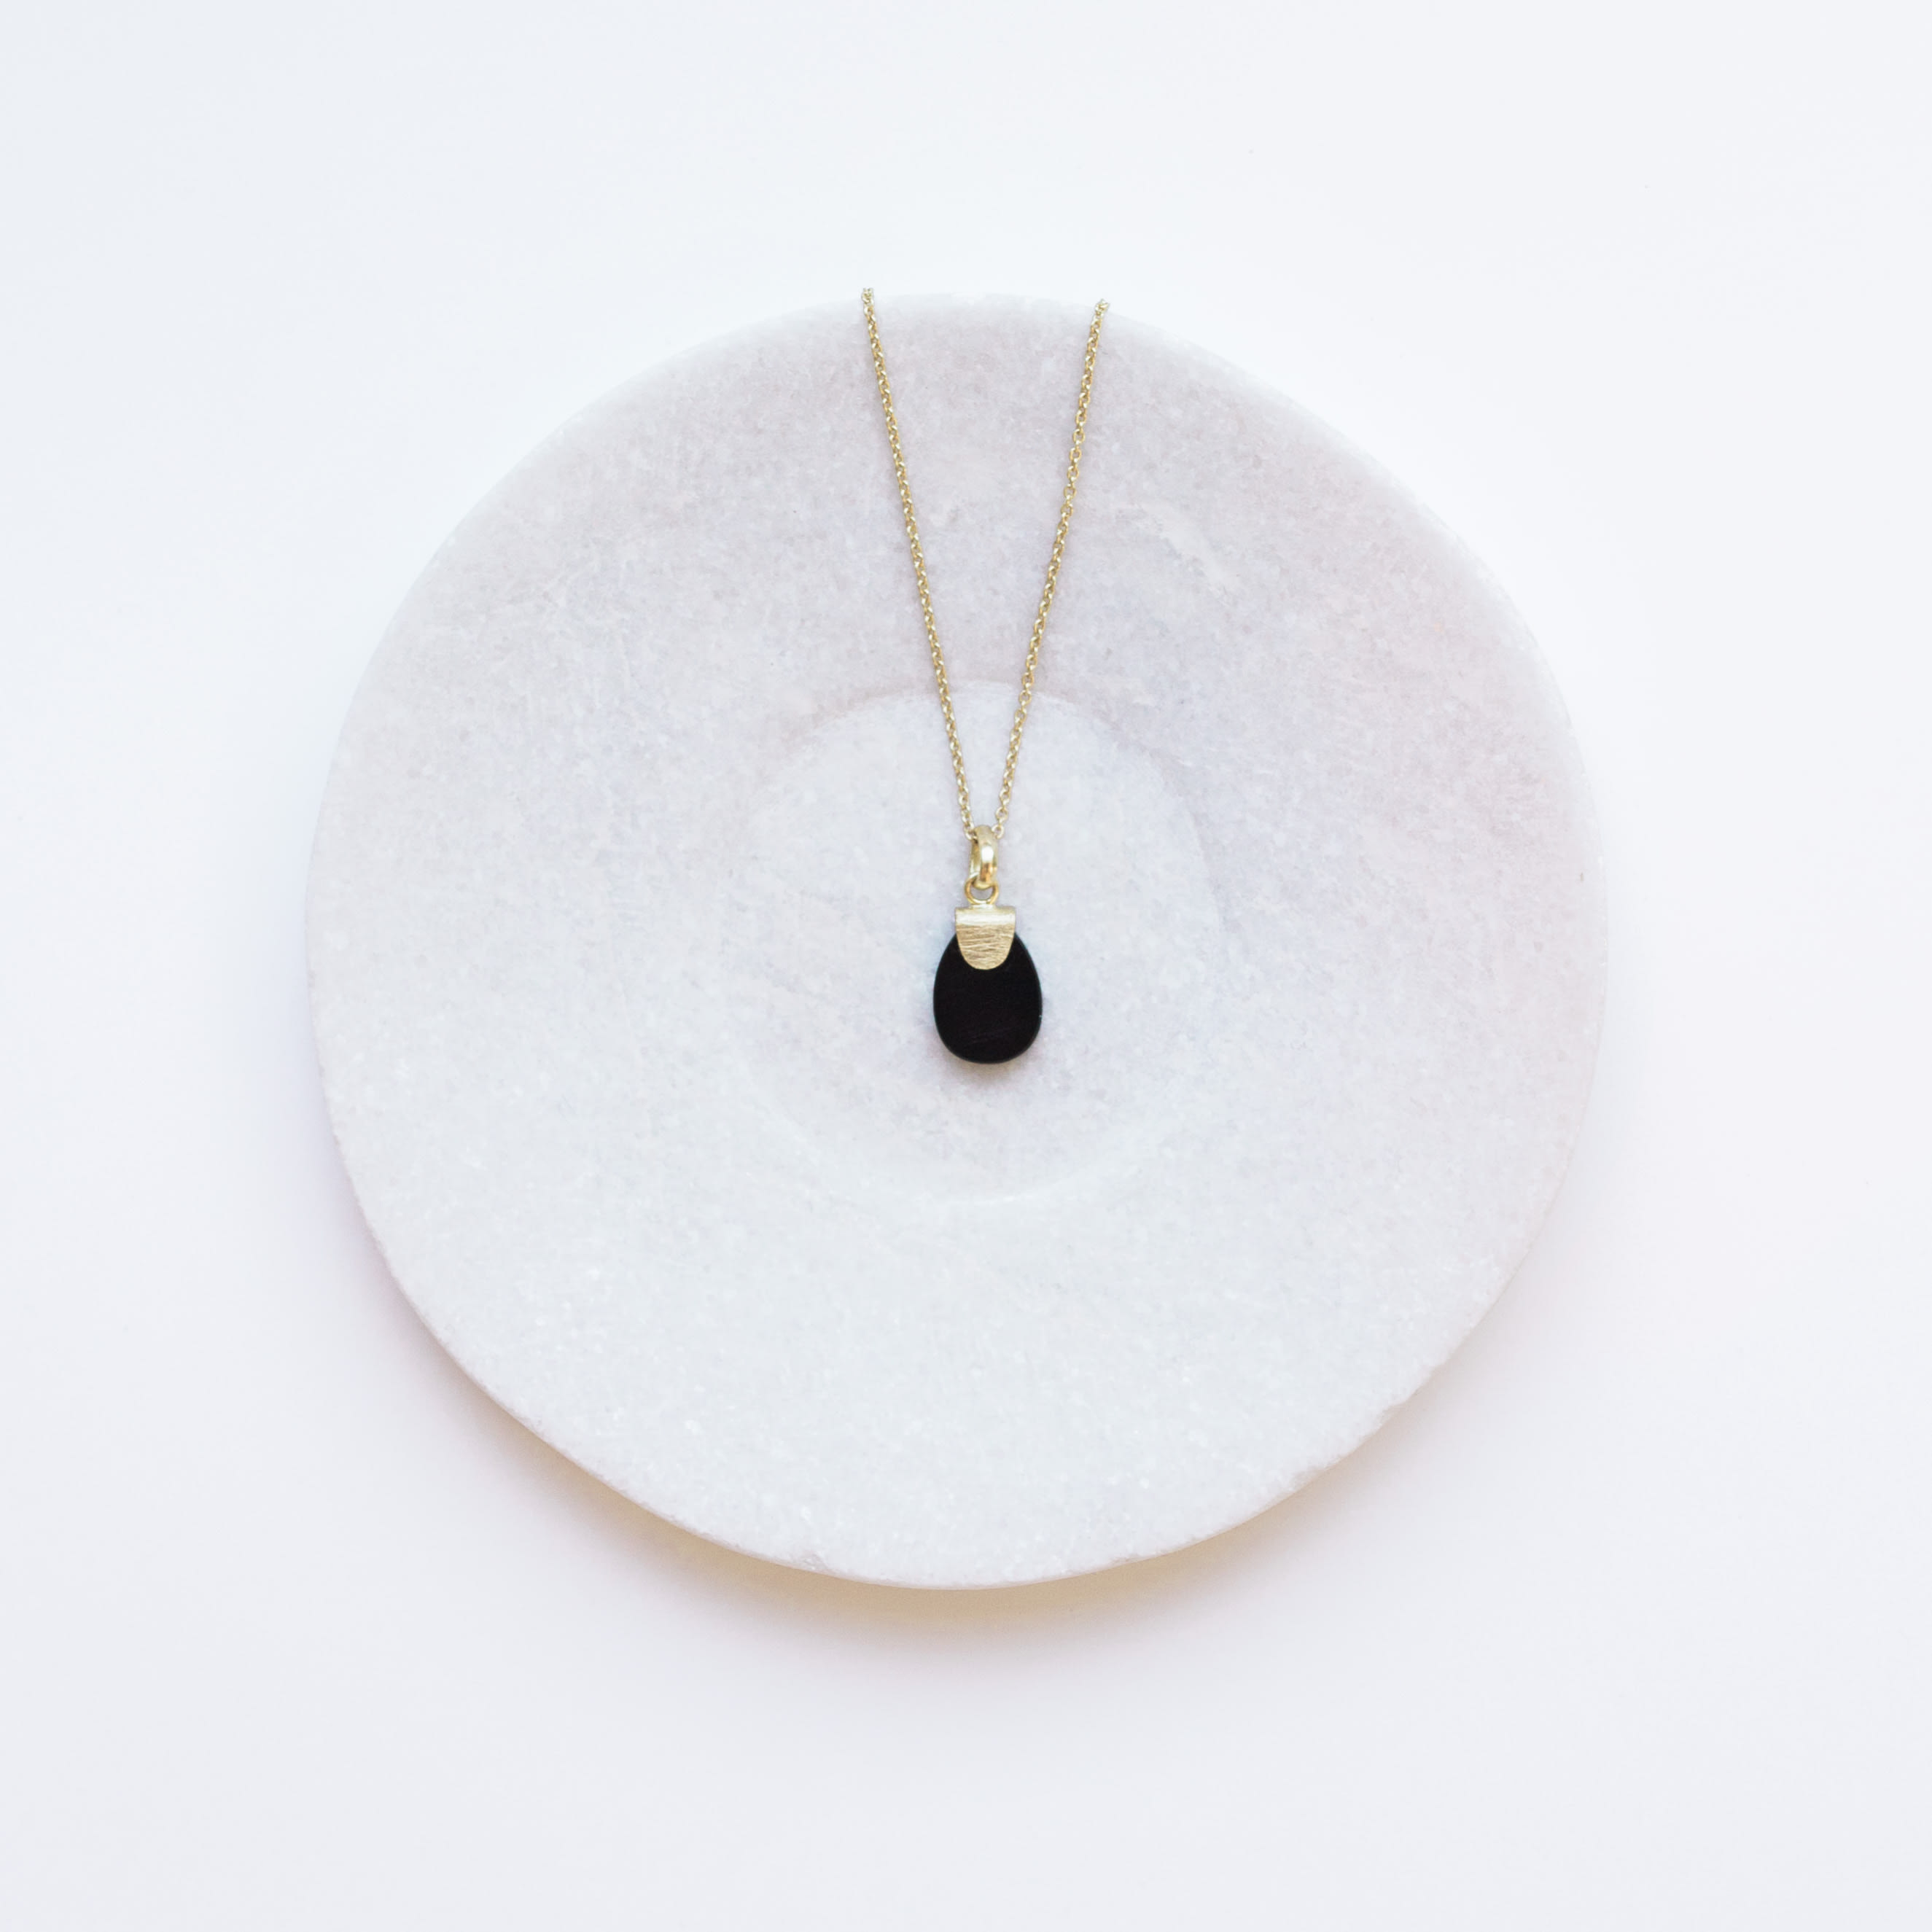 Dassie Artisan Anvi Gold Pendant Necklace - Black Oynx